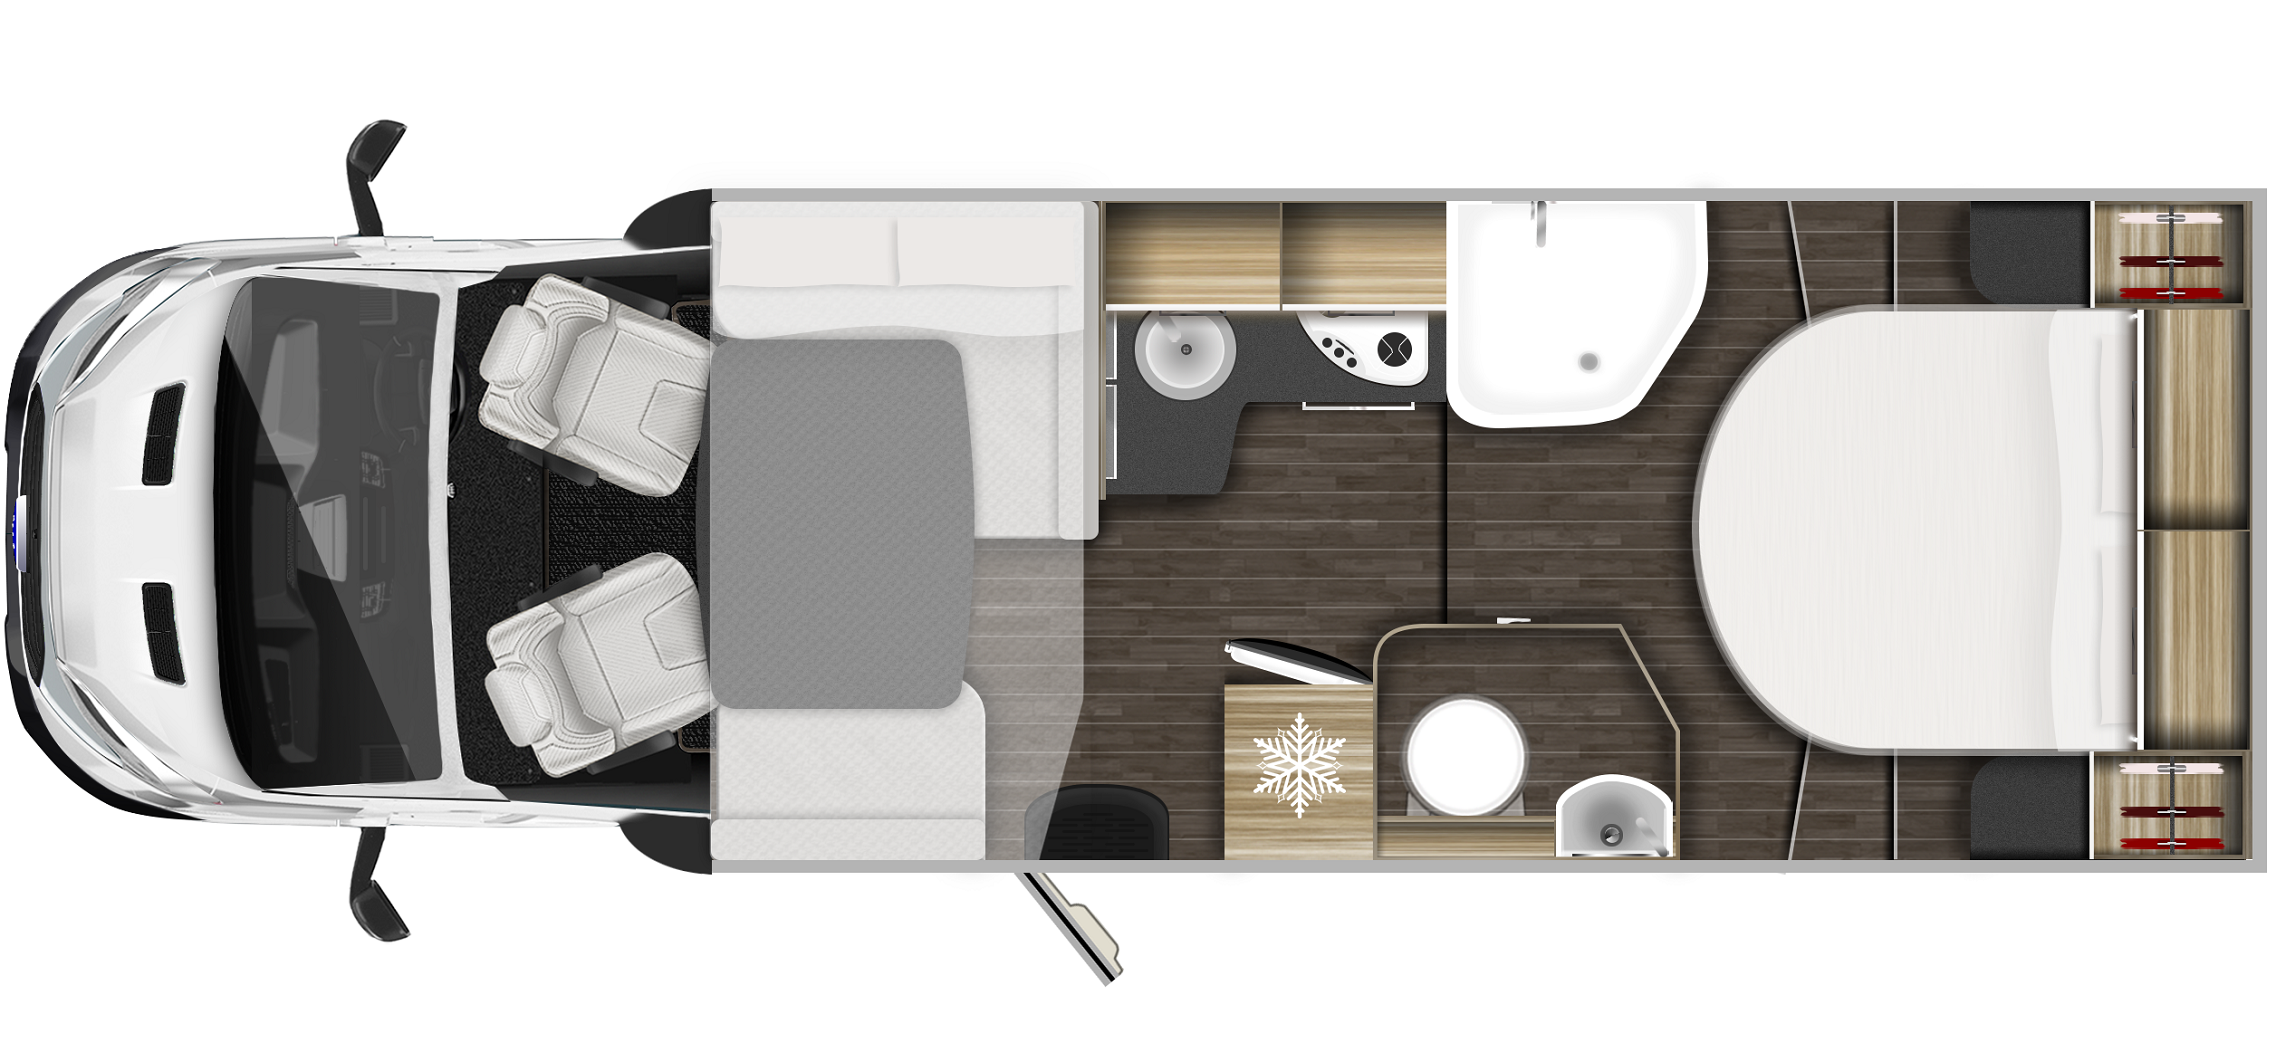 2020 Roller Team Zefiro 696 Motorhome layout